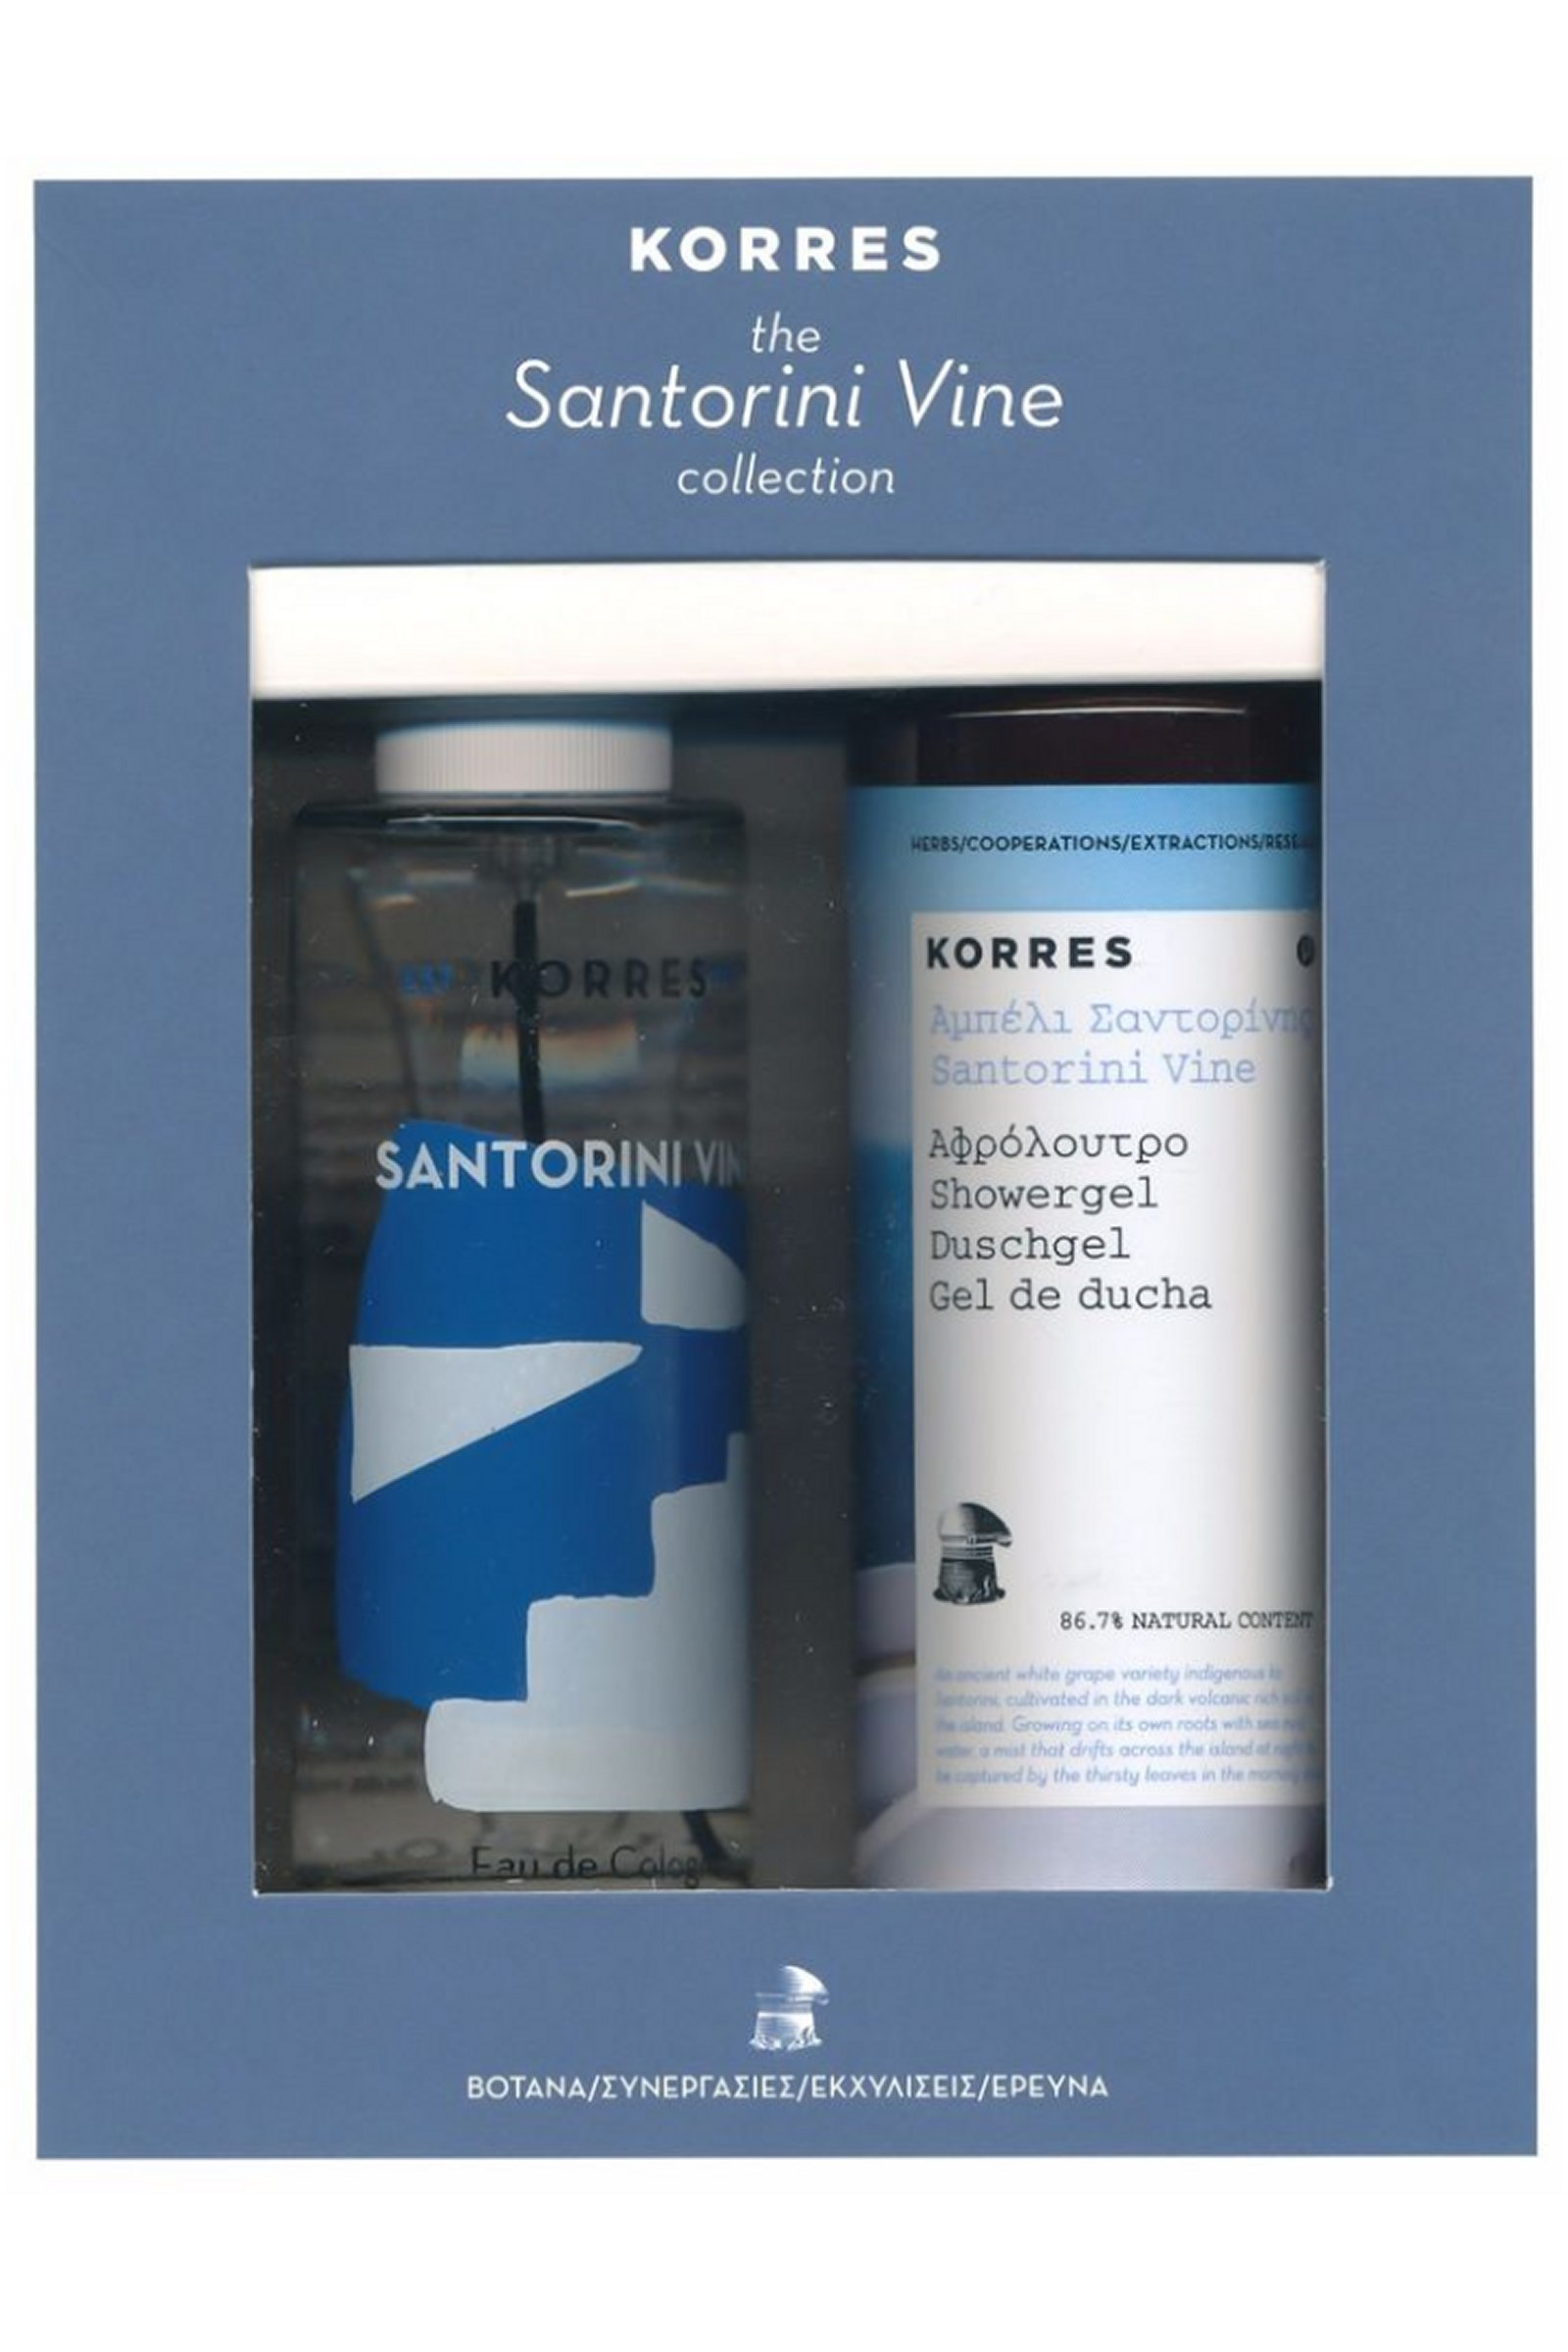 Korres Santorini Vine Eau de Cologne Spray 100ml Shower Gel 250ml